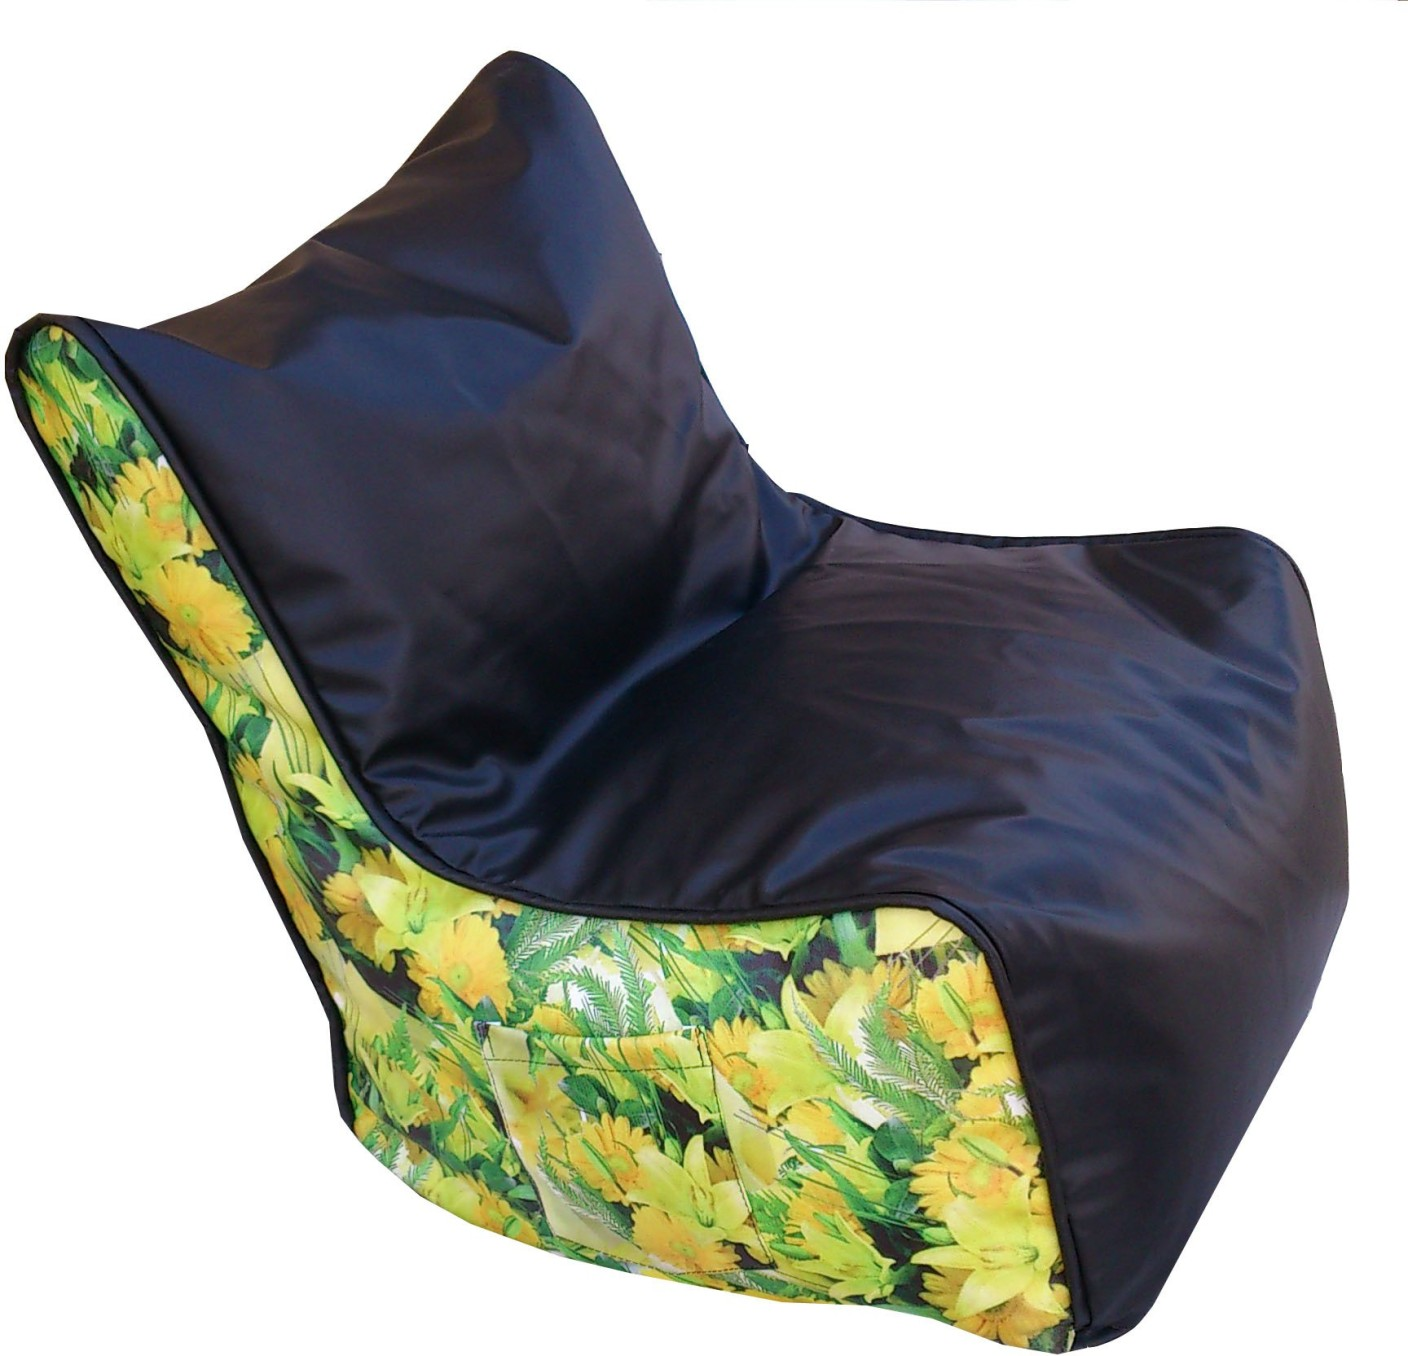 Superb Bean Bag Covers Online India Ahoy Comics Machost Co Dining Chair Design Ideas Machostcouk